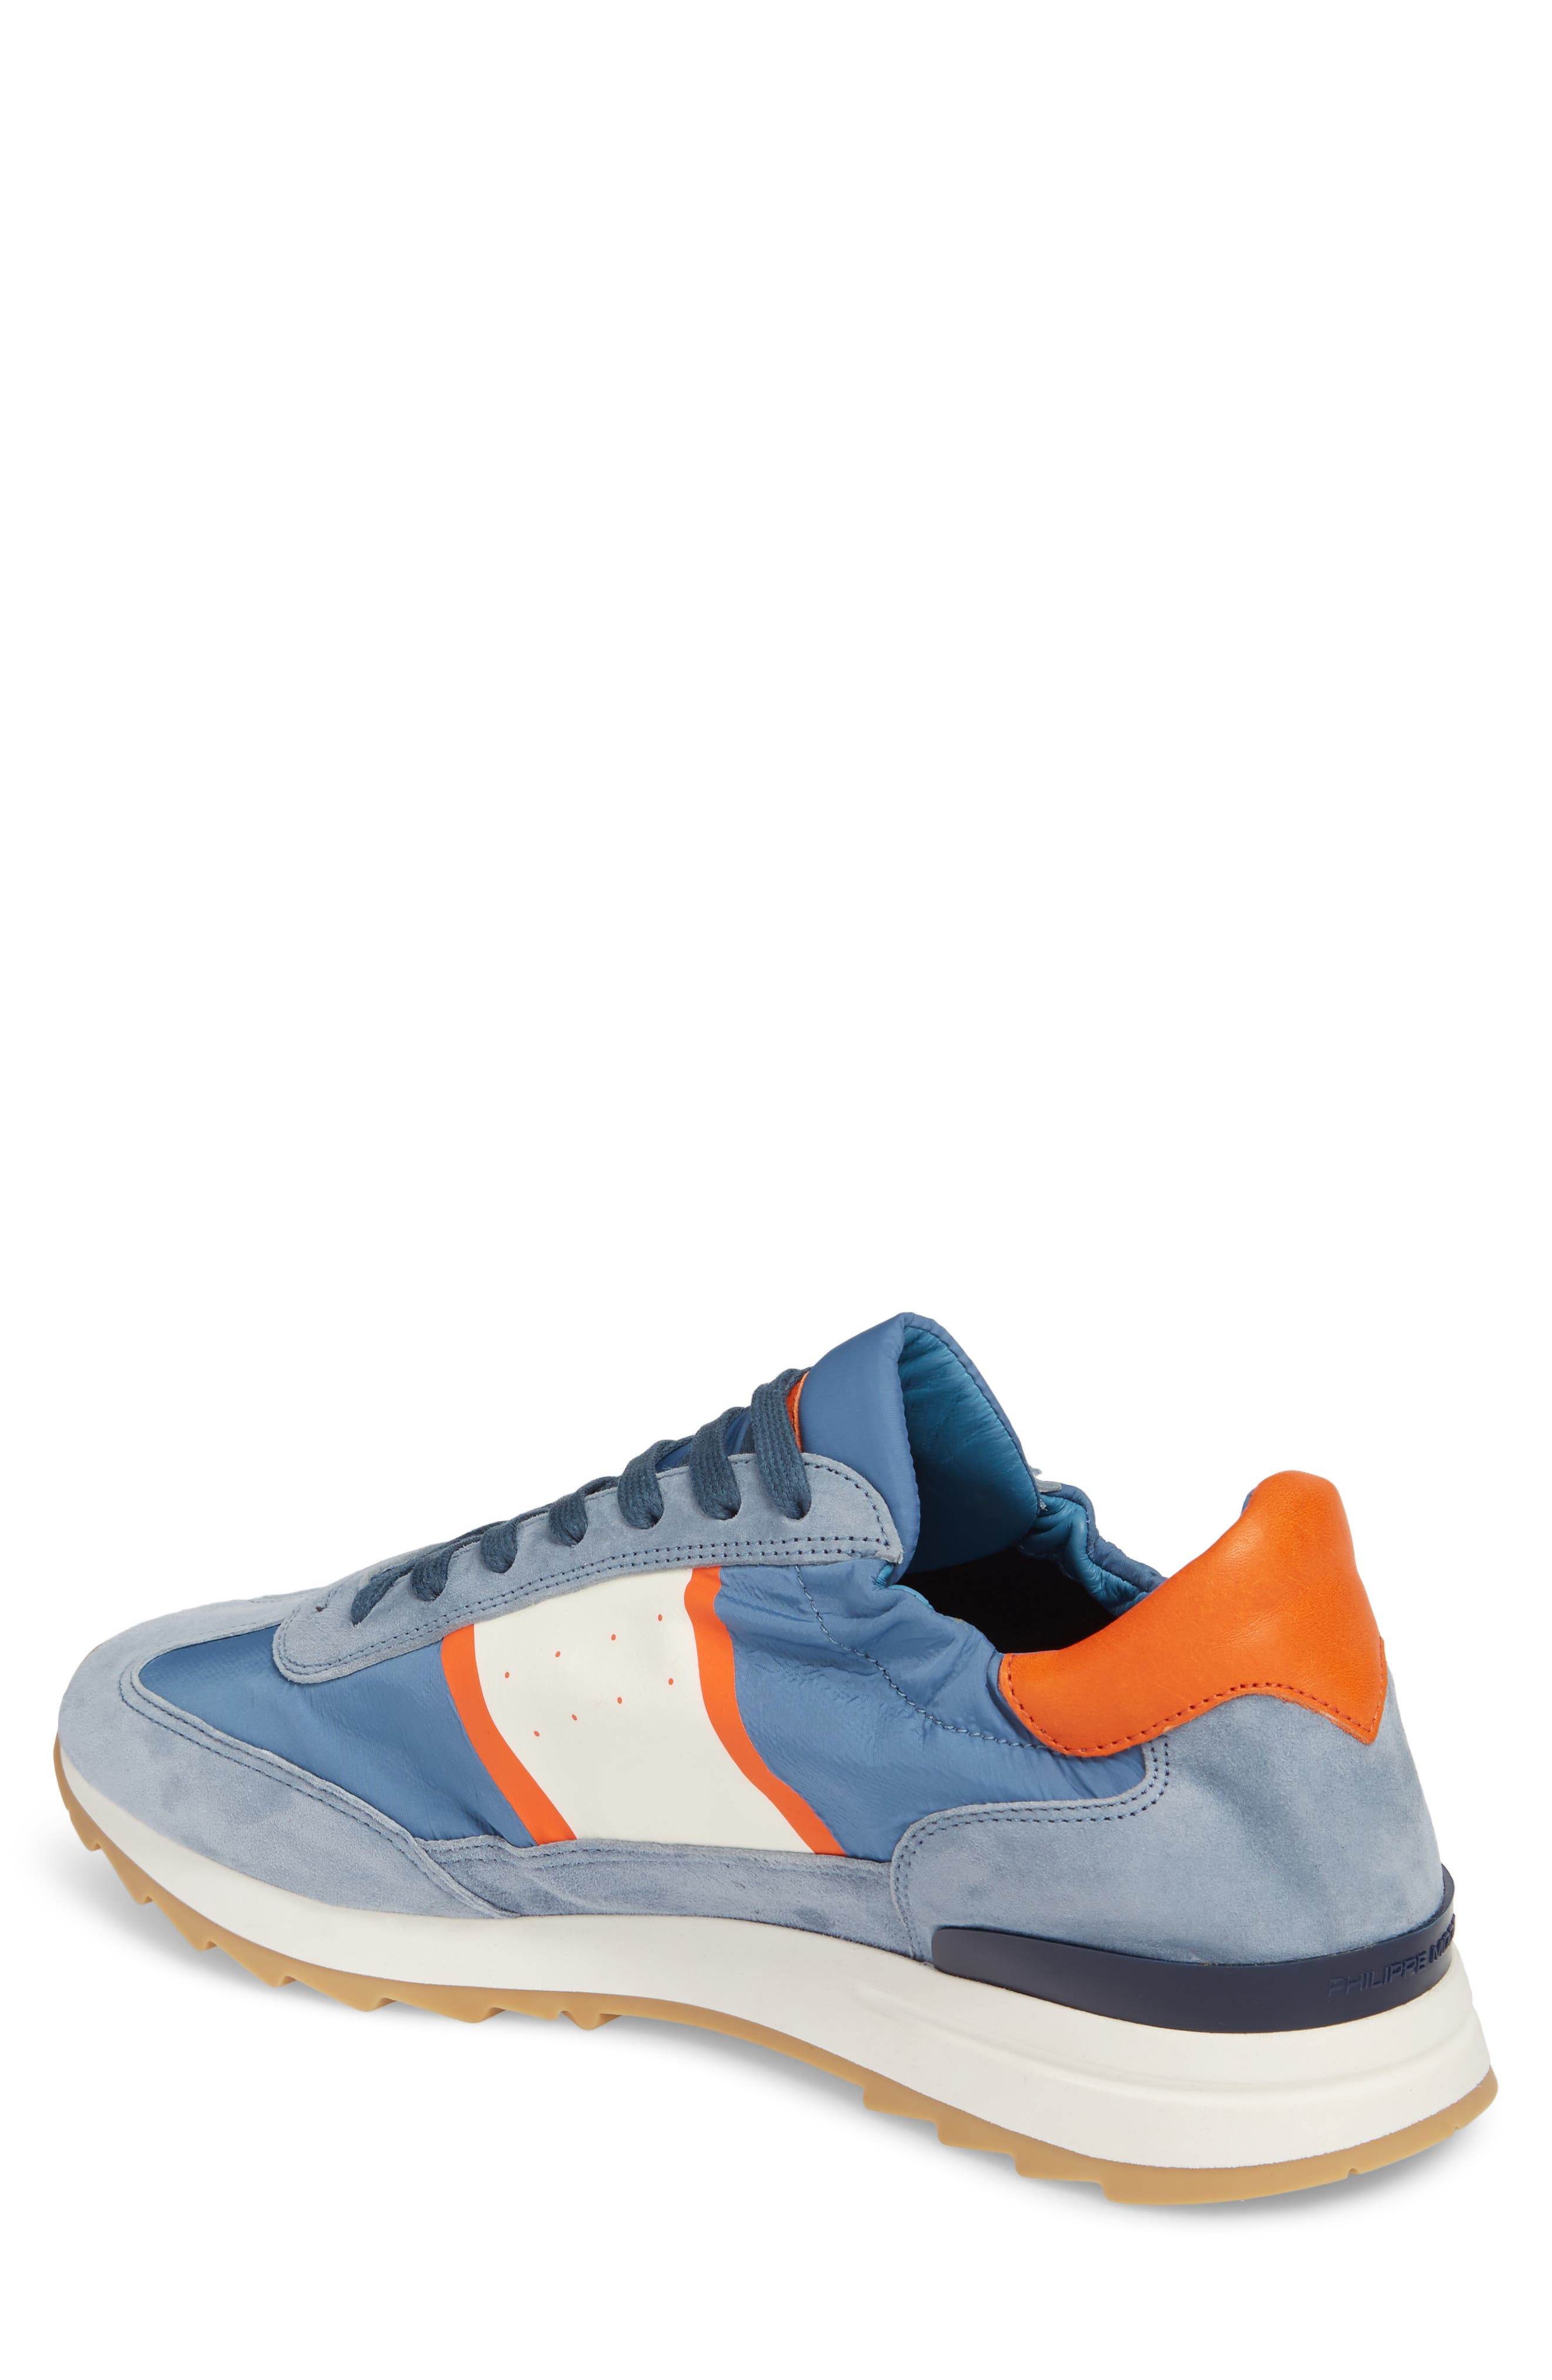 Toujours Sneaker,                             Alternate thumbnail 2, color,                             Blue/ White